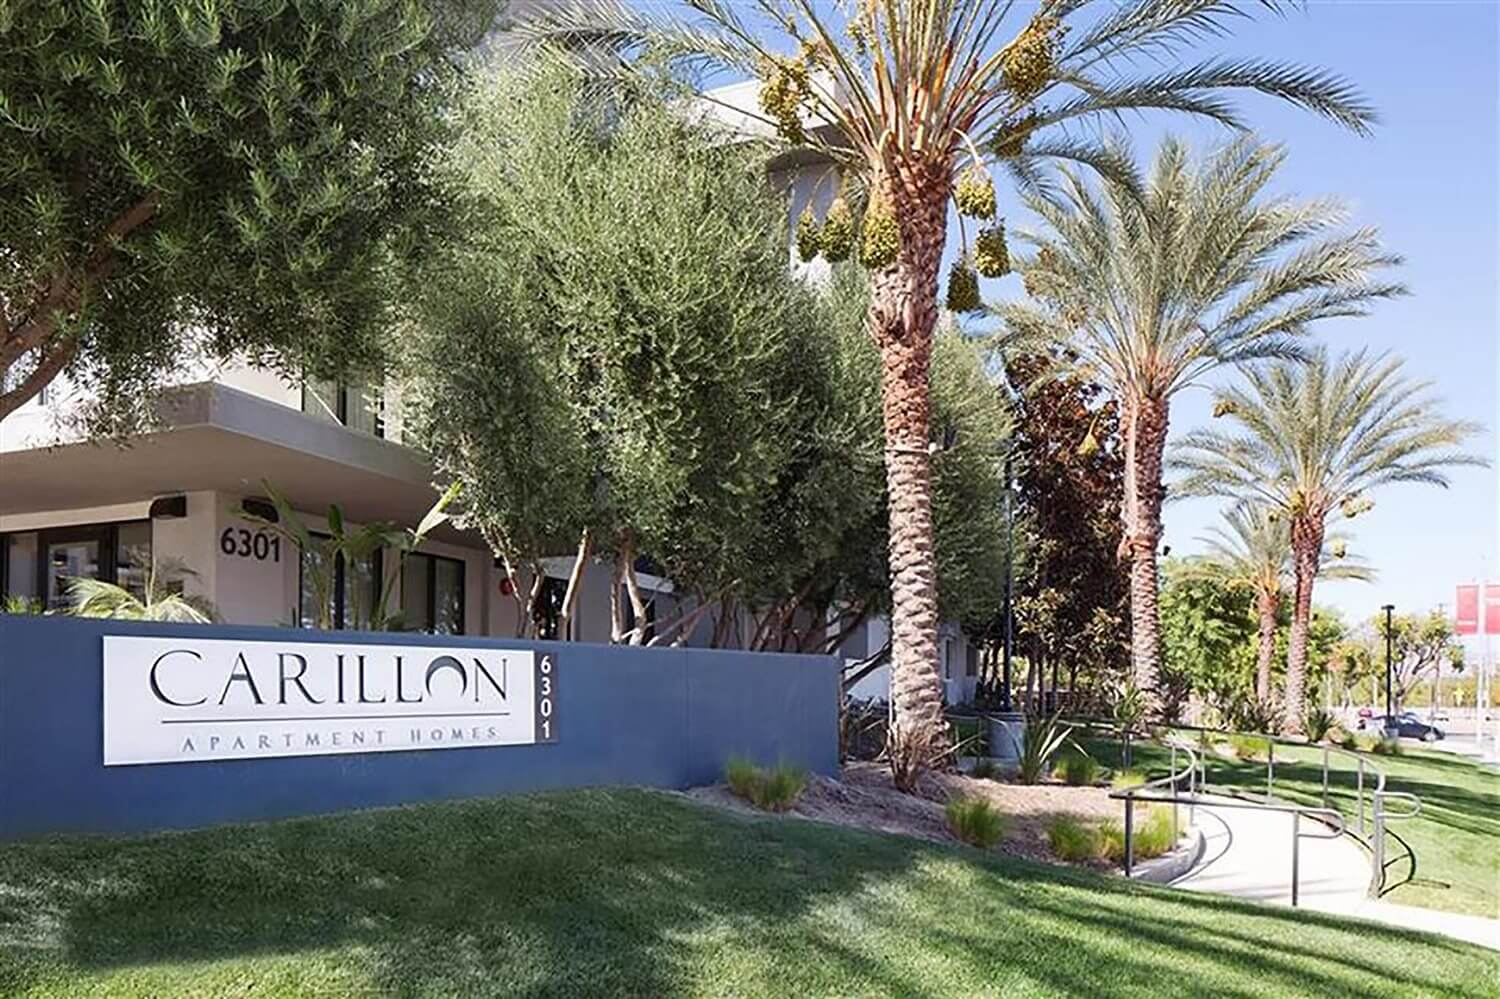 Entrance with Architectural Details at Carillon, Woodland Hills